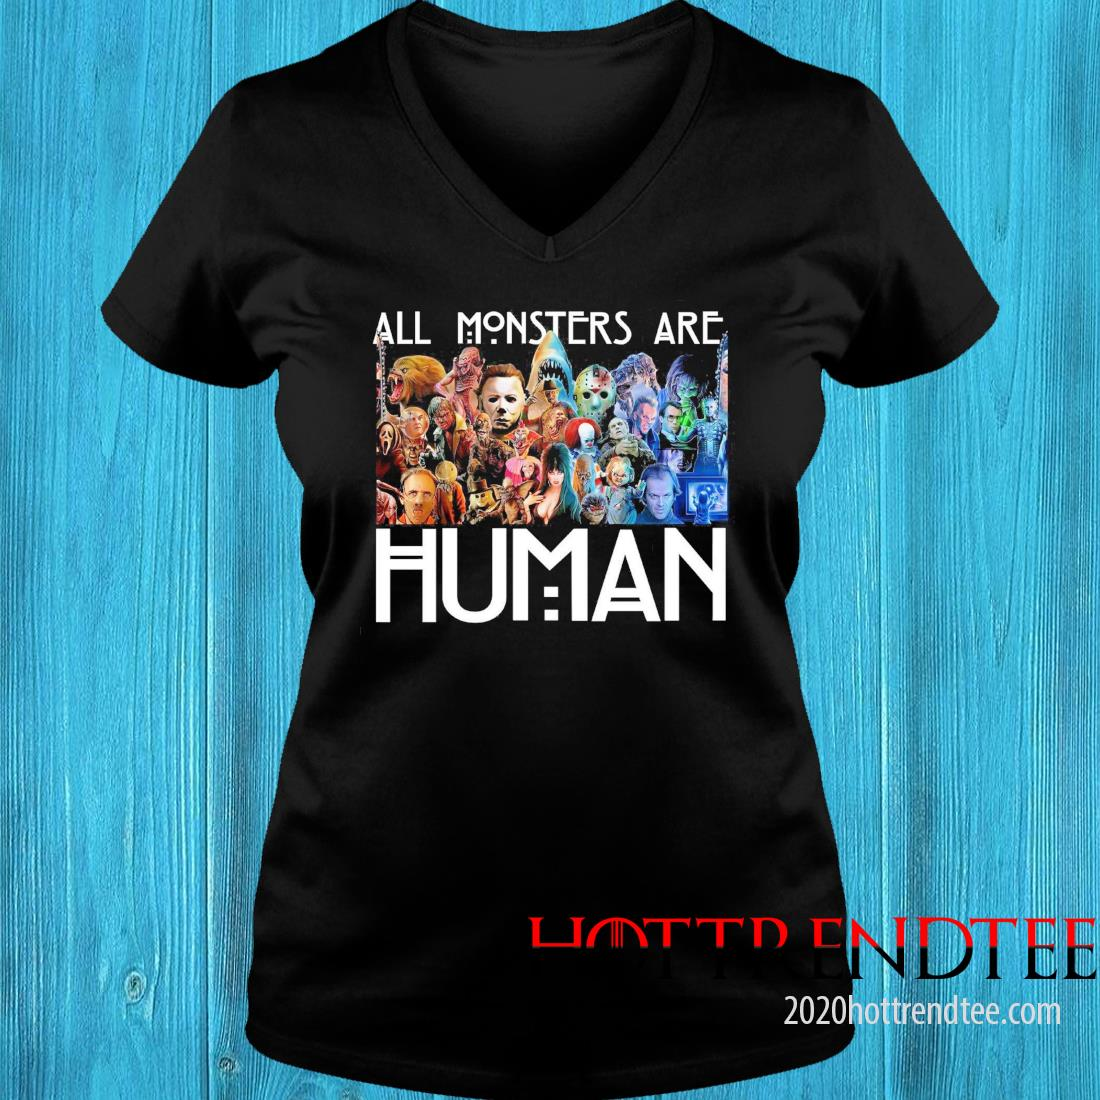 Horror Movie All Monsters Are Human Shirt v-neck tee